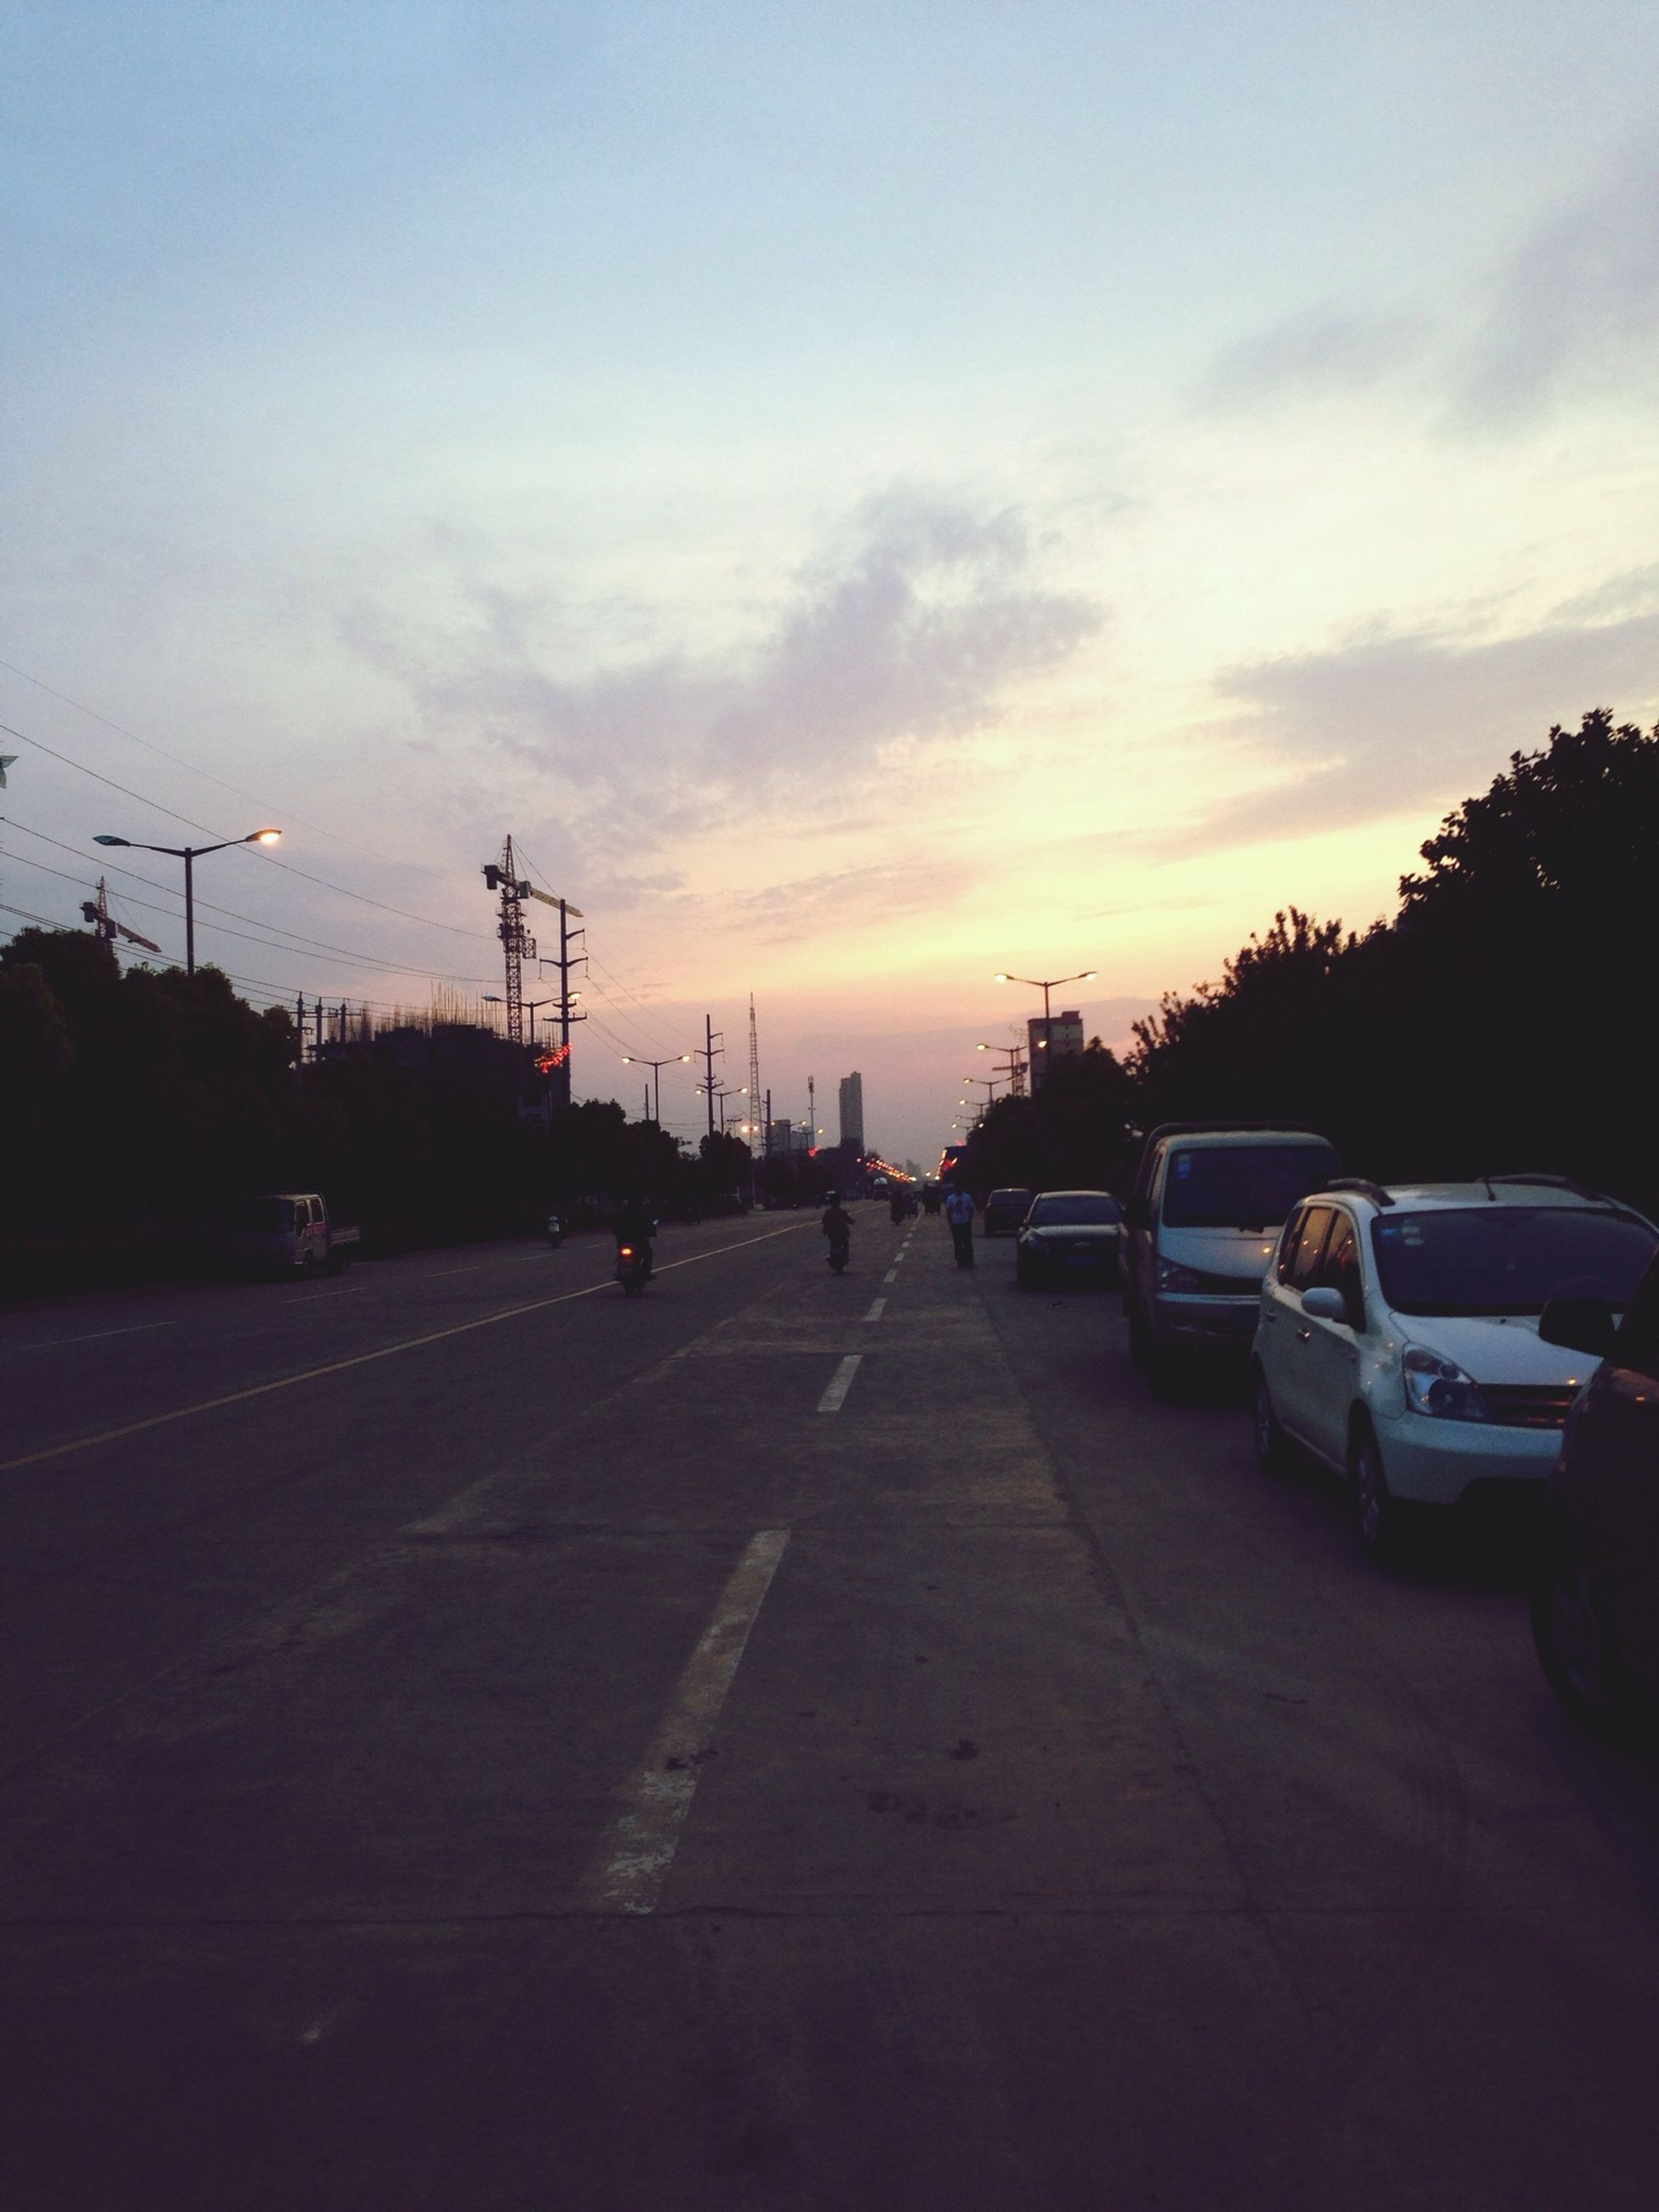 transportation, car, road, sunset, land vehicle, mode of transport, sky, the way forward, street, road marking, cloud - sky, silhouette, street light, diminishing perspective, cloud, vanishing point, on the move, outdoors, cloudy, no people